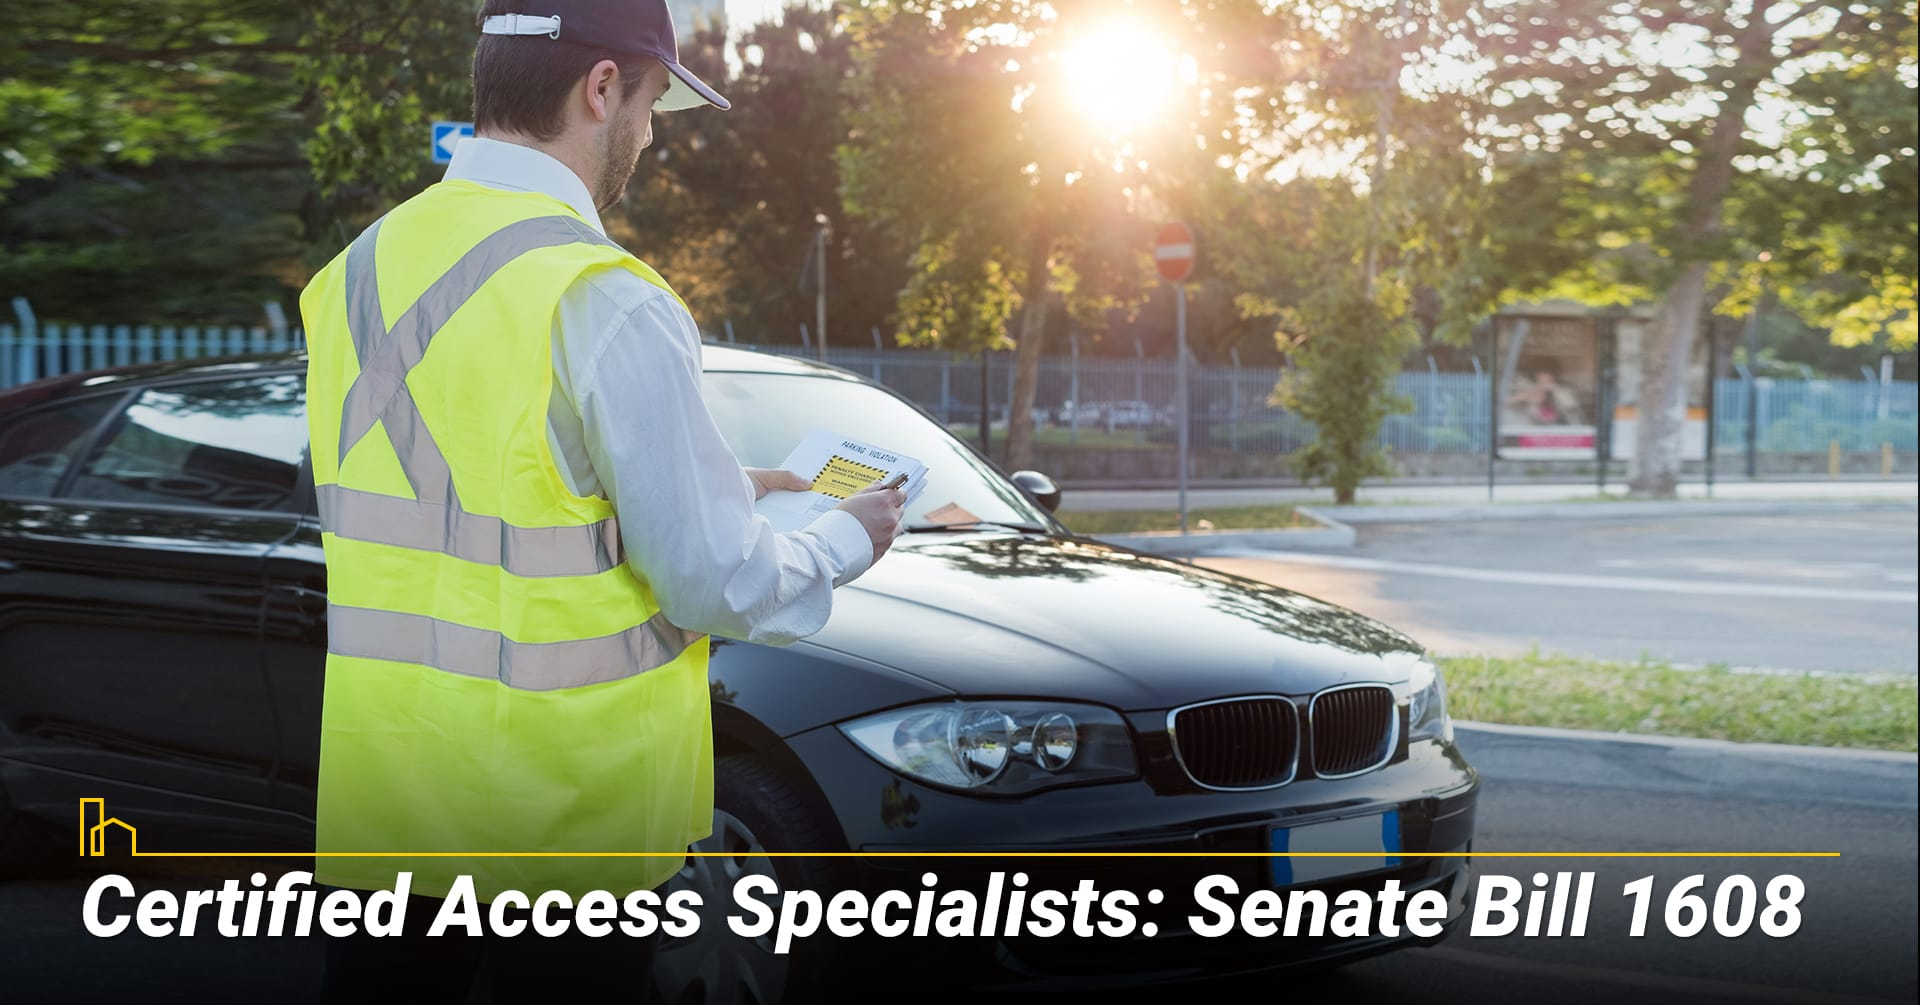 Certified Access Specialist, work with a certified access specialist